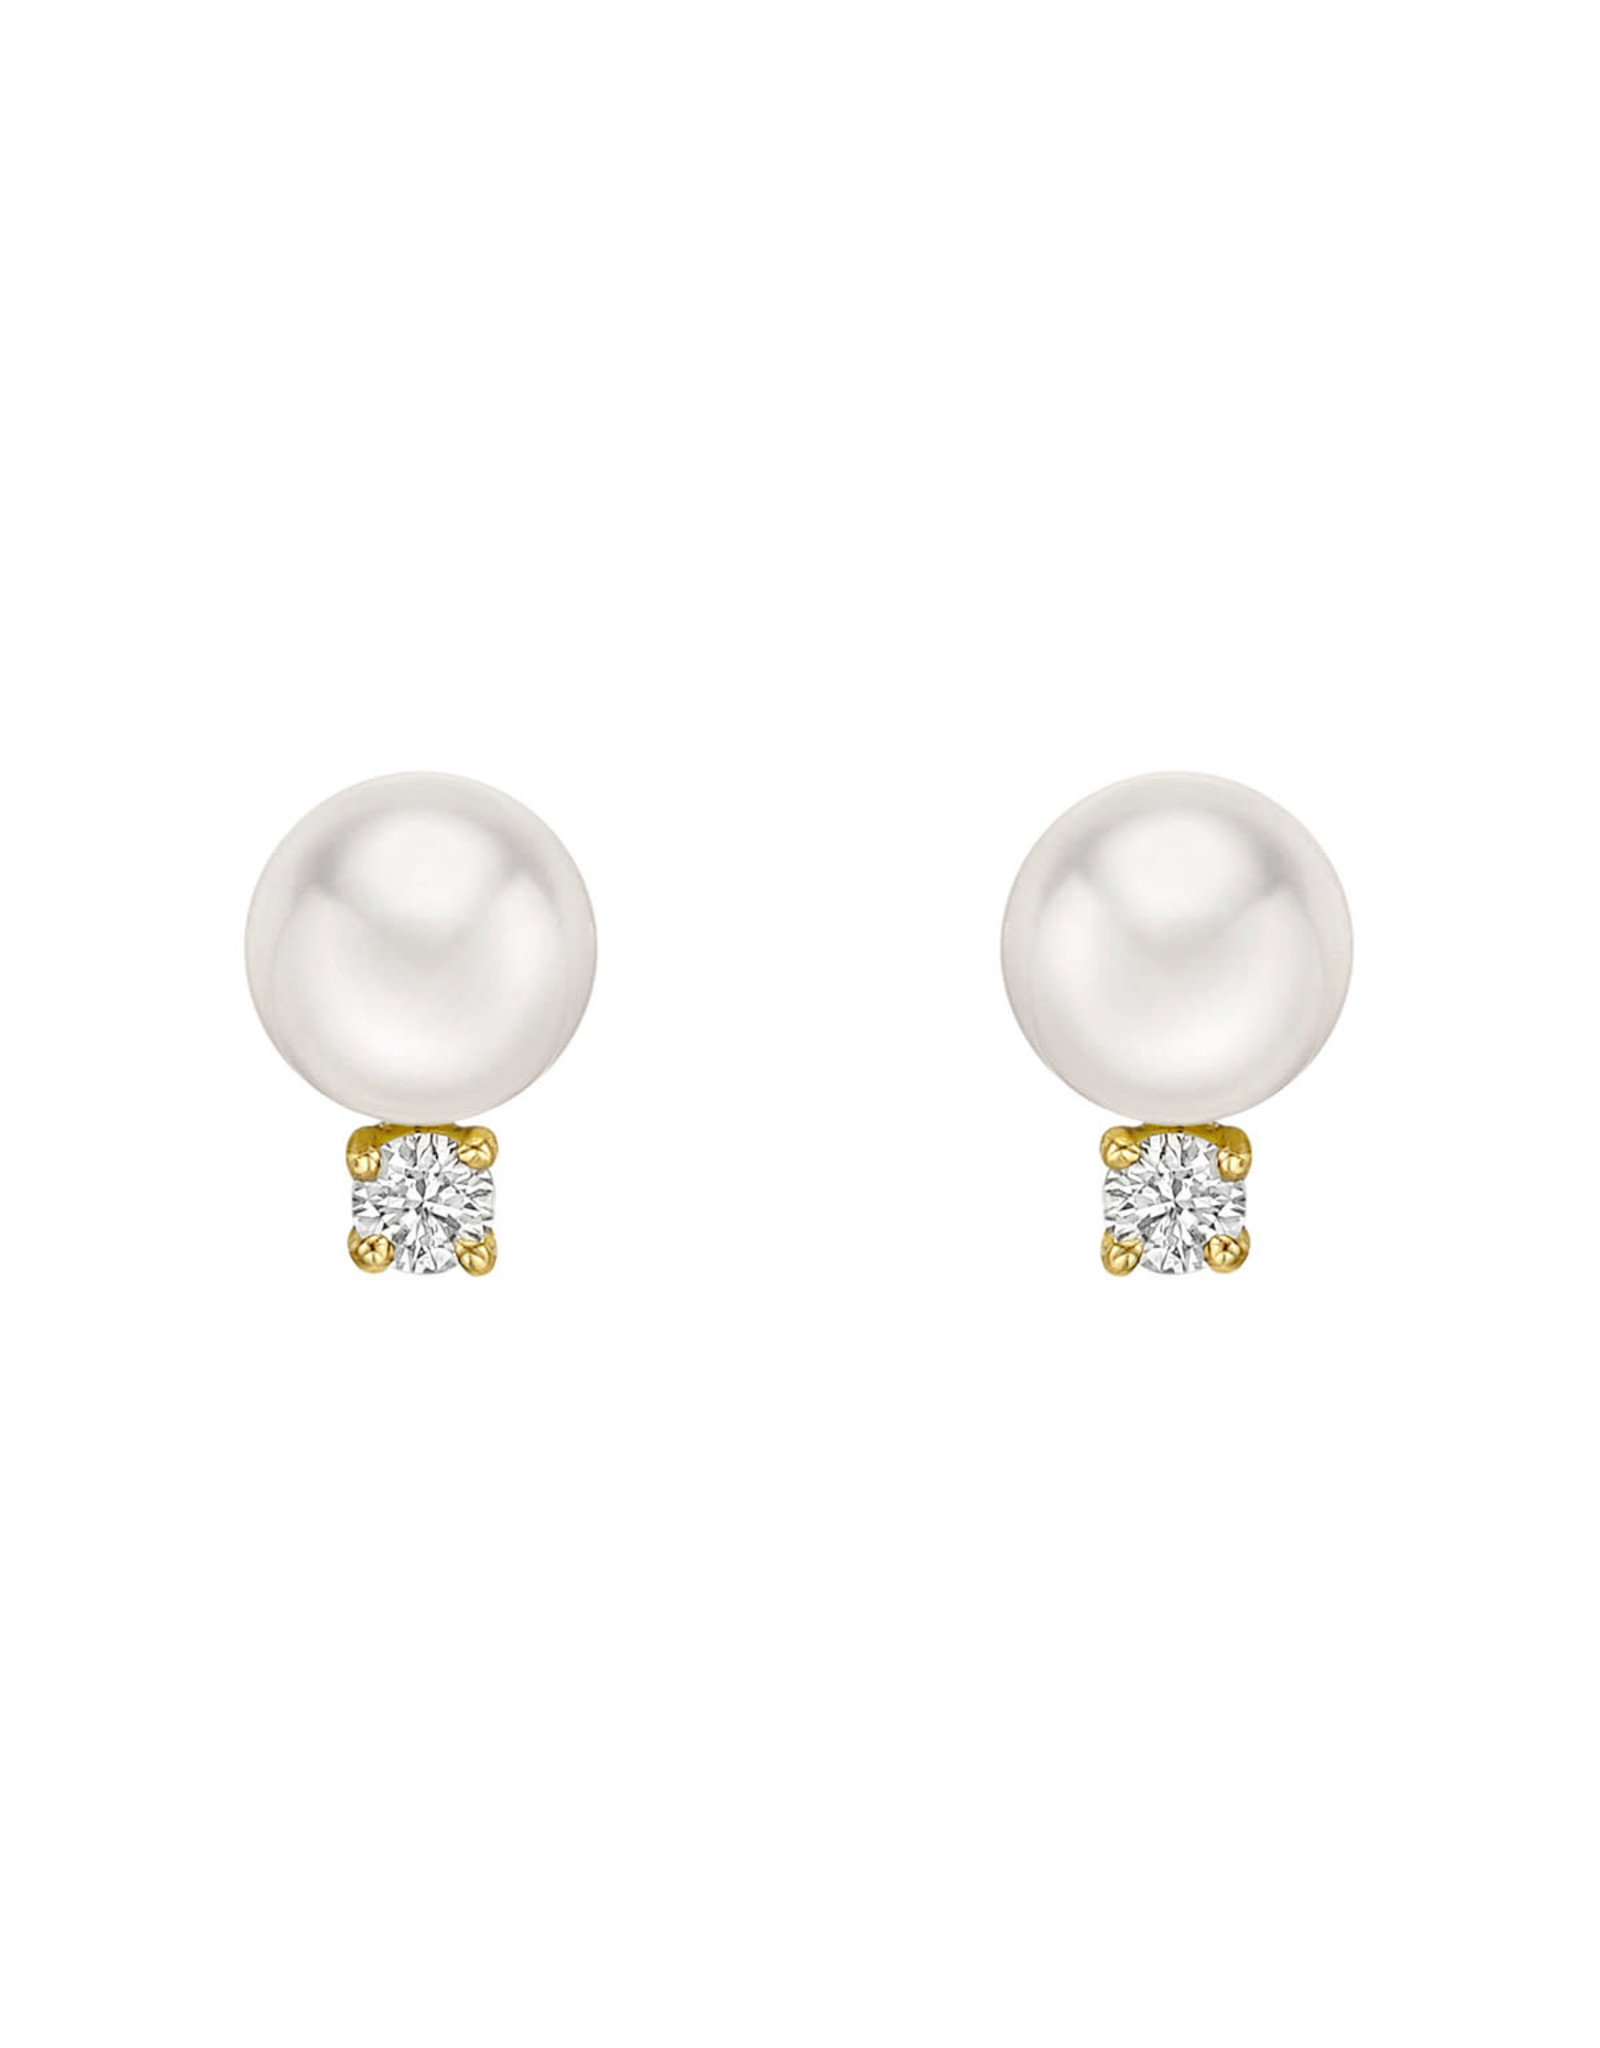 14K Yellow Gold 8.5mm Pearl and Diamond Stud Earrings, D: 0.20ct